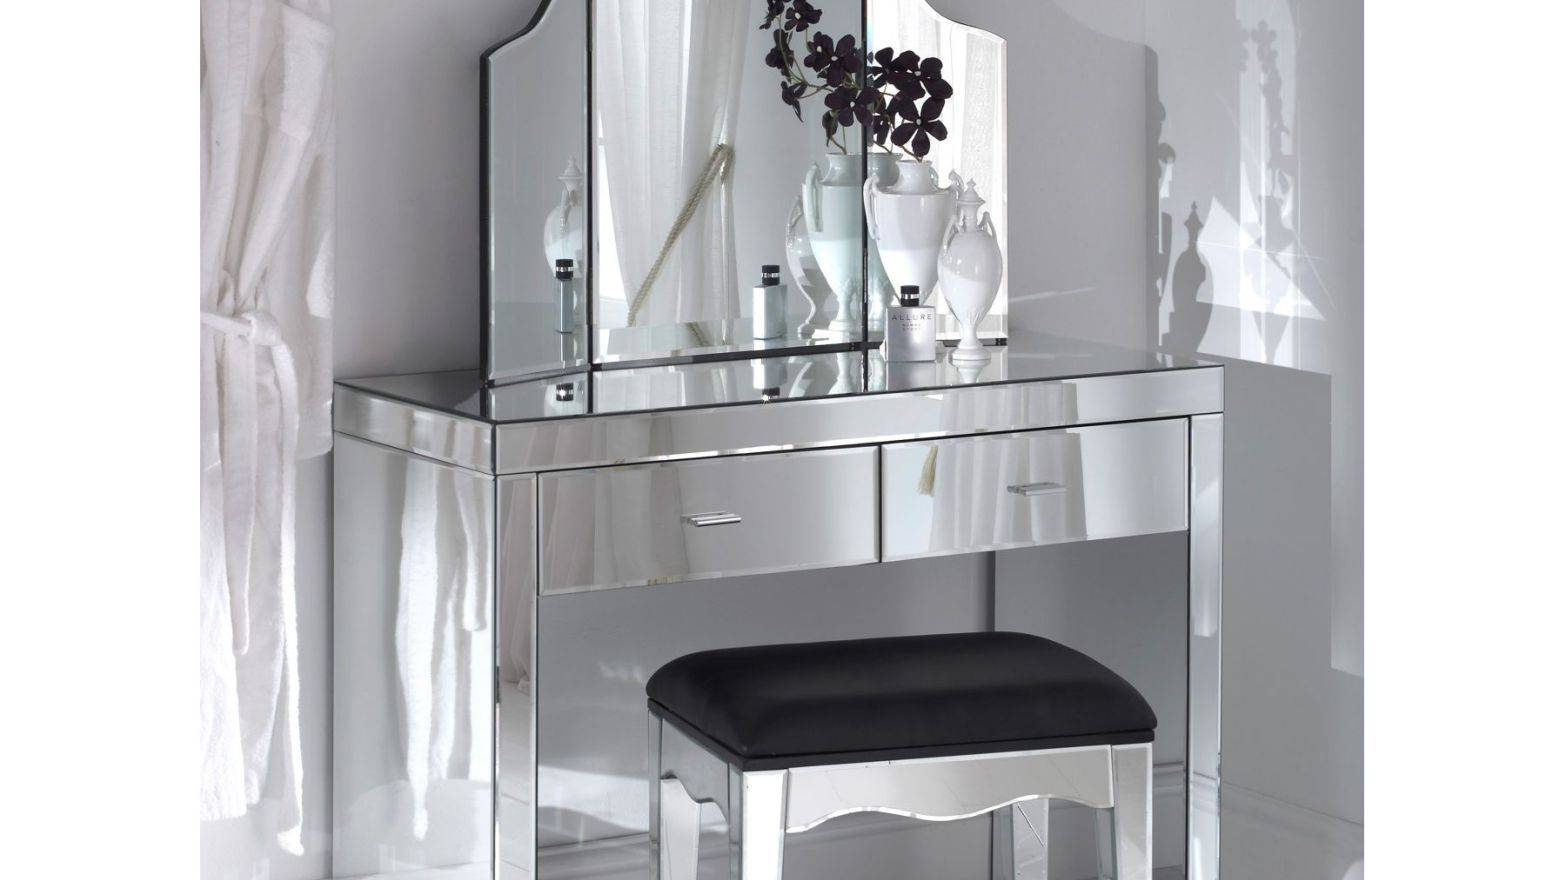 Mirror : Furniture: Mesmerizing Oversized Floor Mirror For Home with regard to Floor Dressing Mirrors (Image 12 of 15)